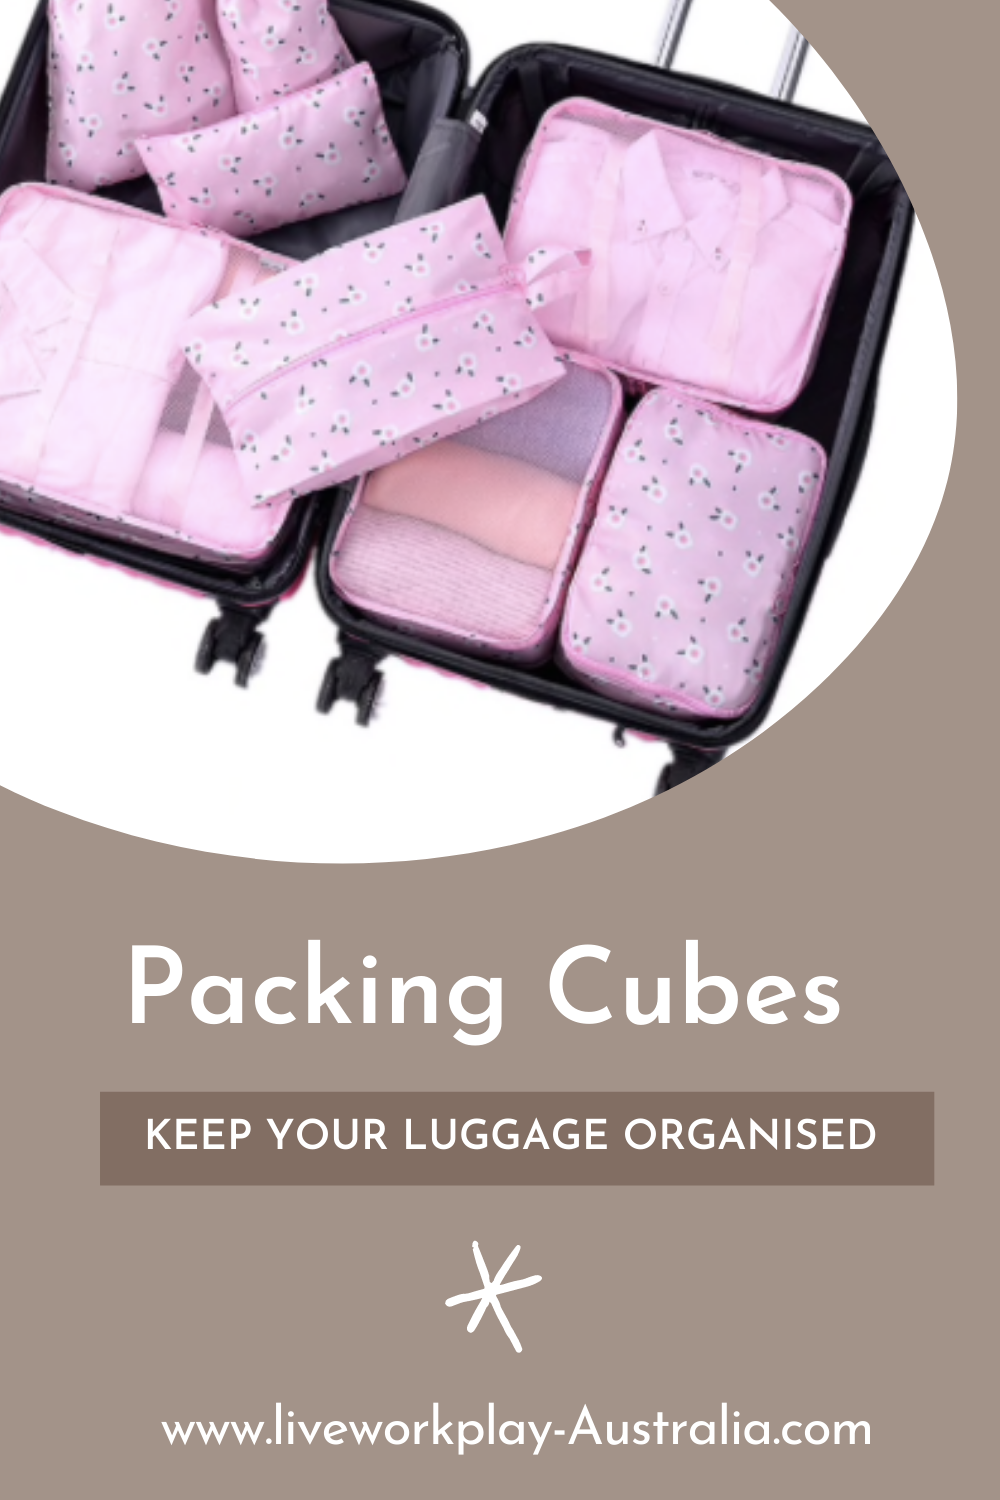 Pink Packing Cubes Inside A Suitcase. Packing Cubes Are Keeping The Items Organised.